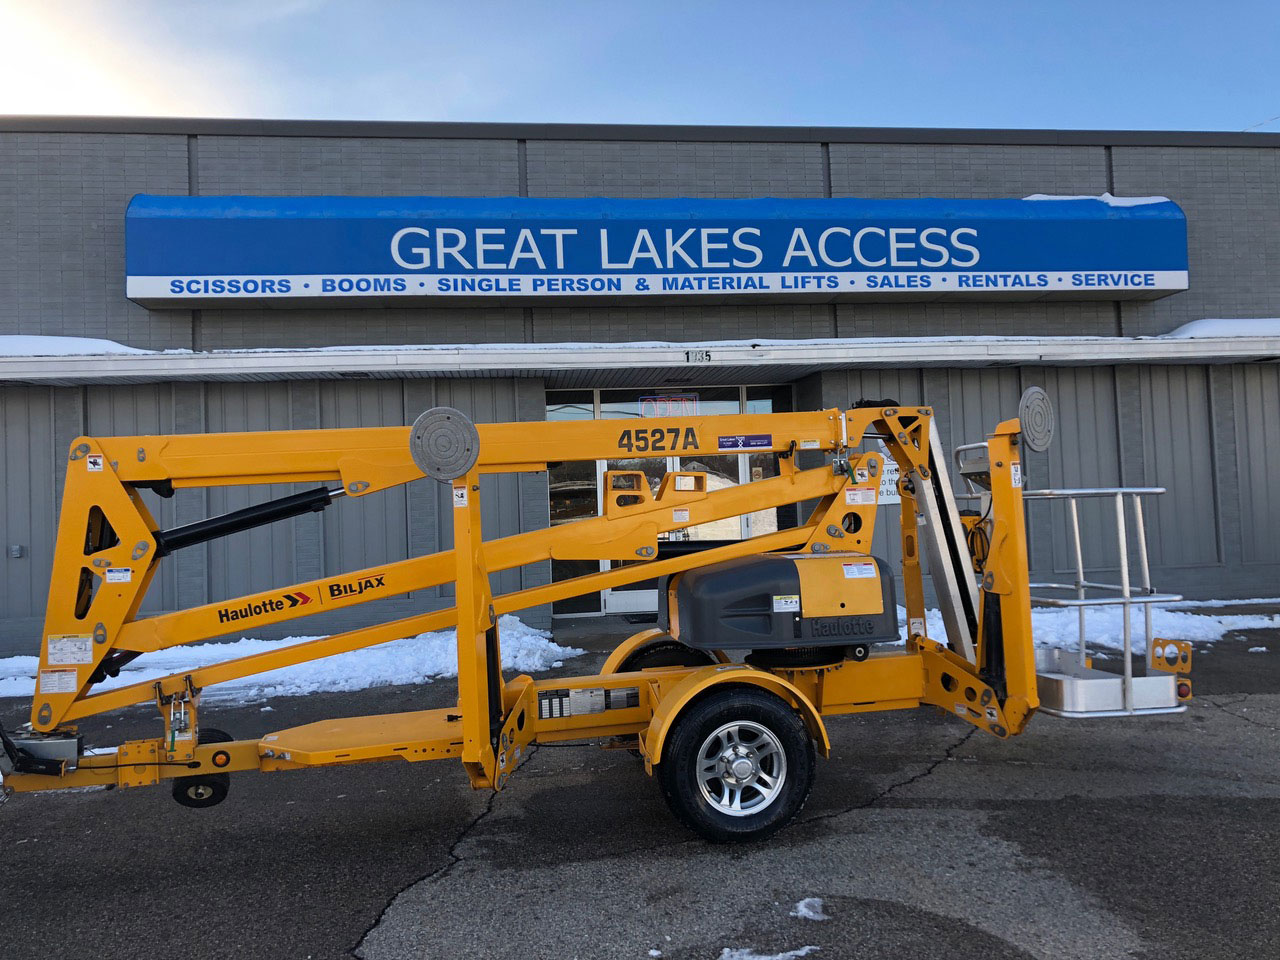 Great Lakes Access storefront behind trailer boom lift